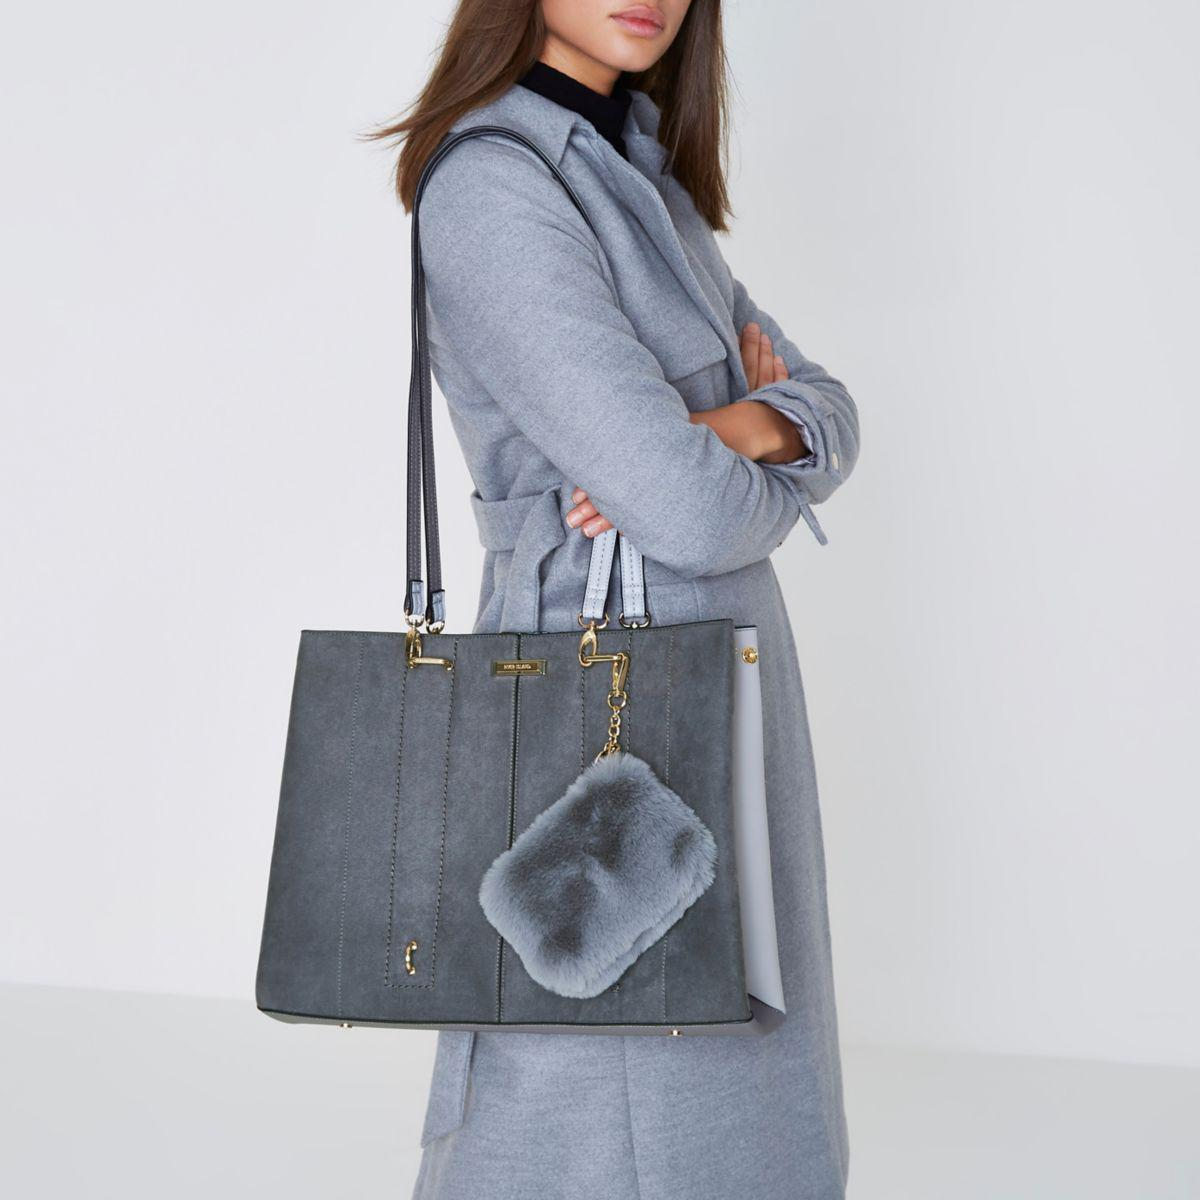 River Island Grey Large Tote Bag And Snakeskin Pouchette in Grey